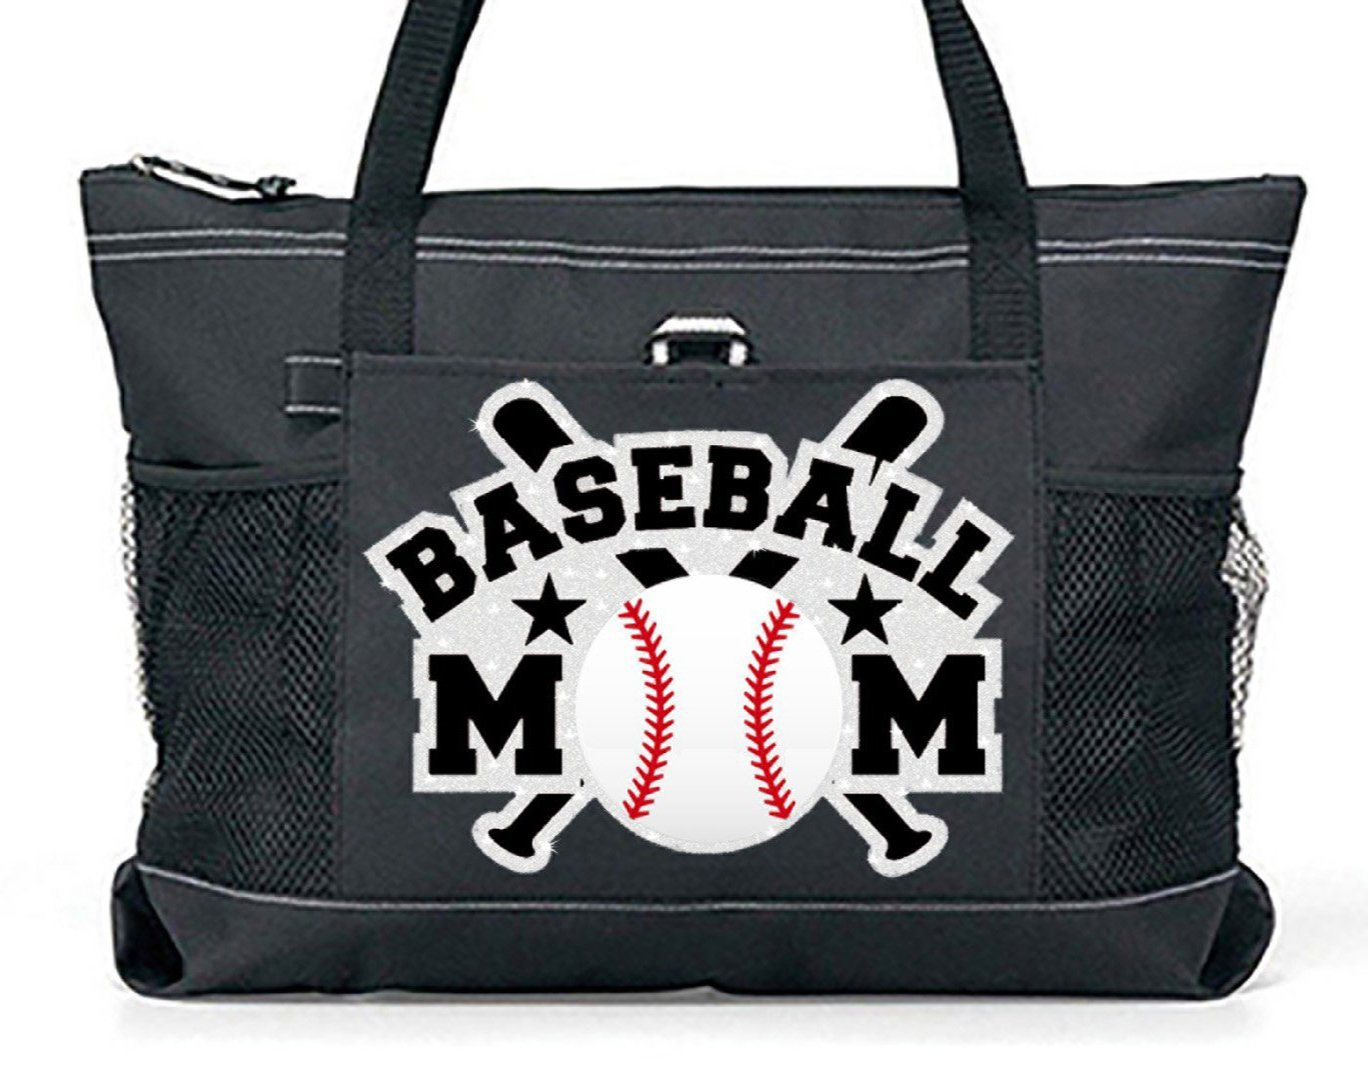 """Glitter Bats"" Baseball Mom Tote. Silver glitter Bats with white glitter Baseball on a Large Black Tote Totes-n-togs"